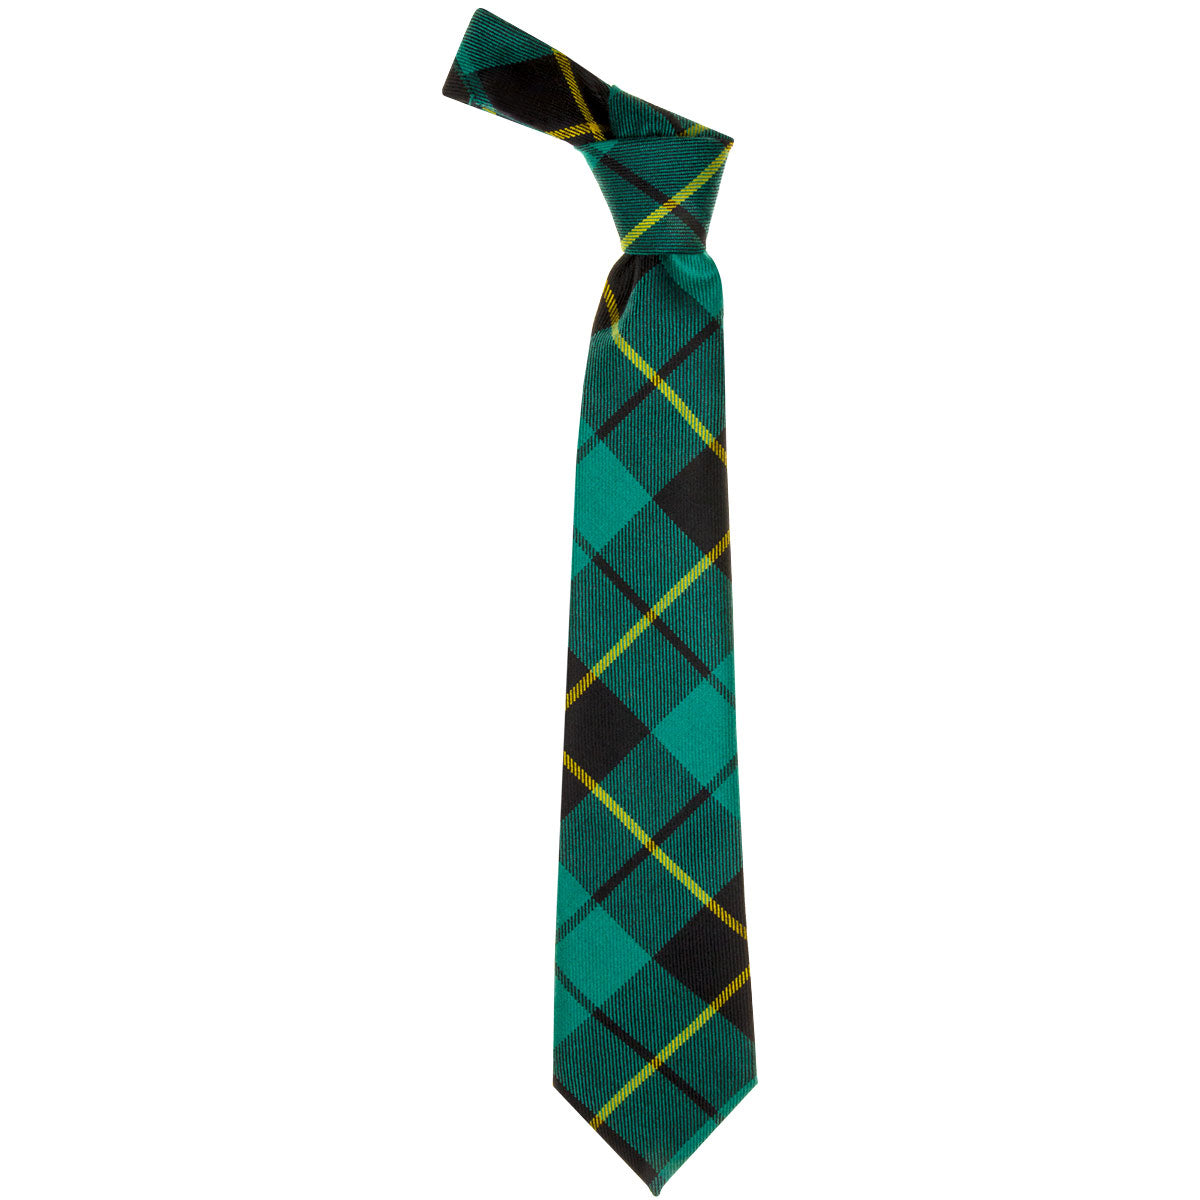 Wallace Anc Hunting Tartan Tie from Anderson Kilts Dumfries